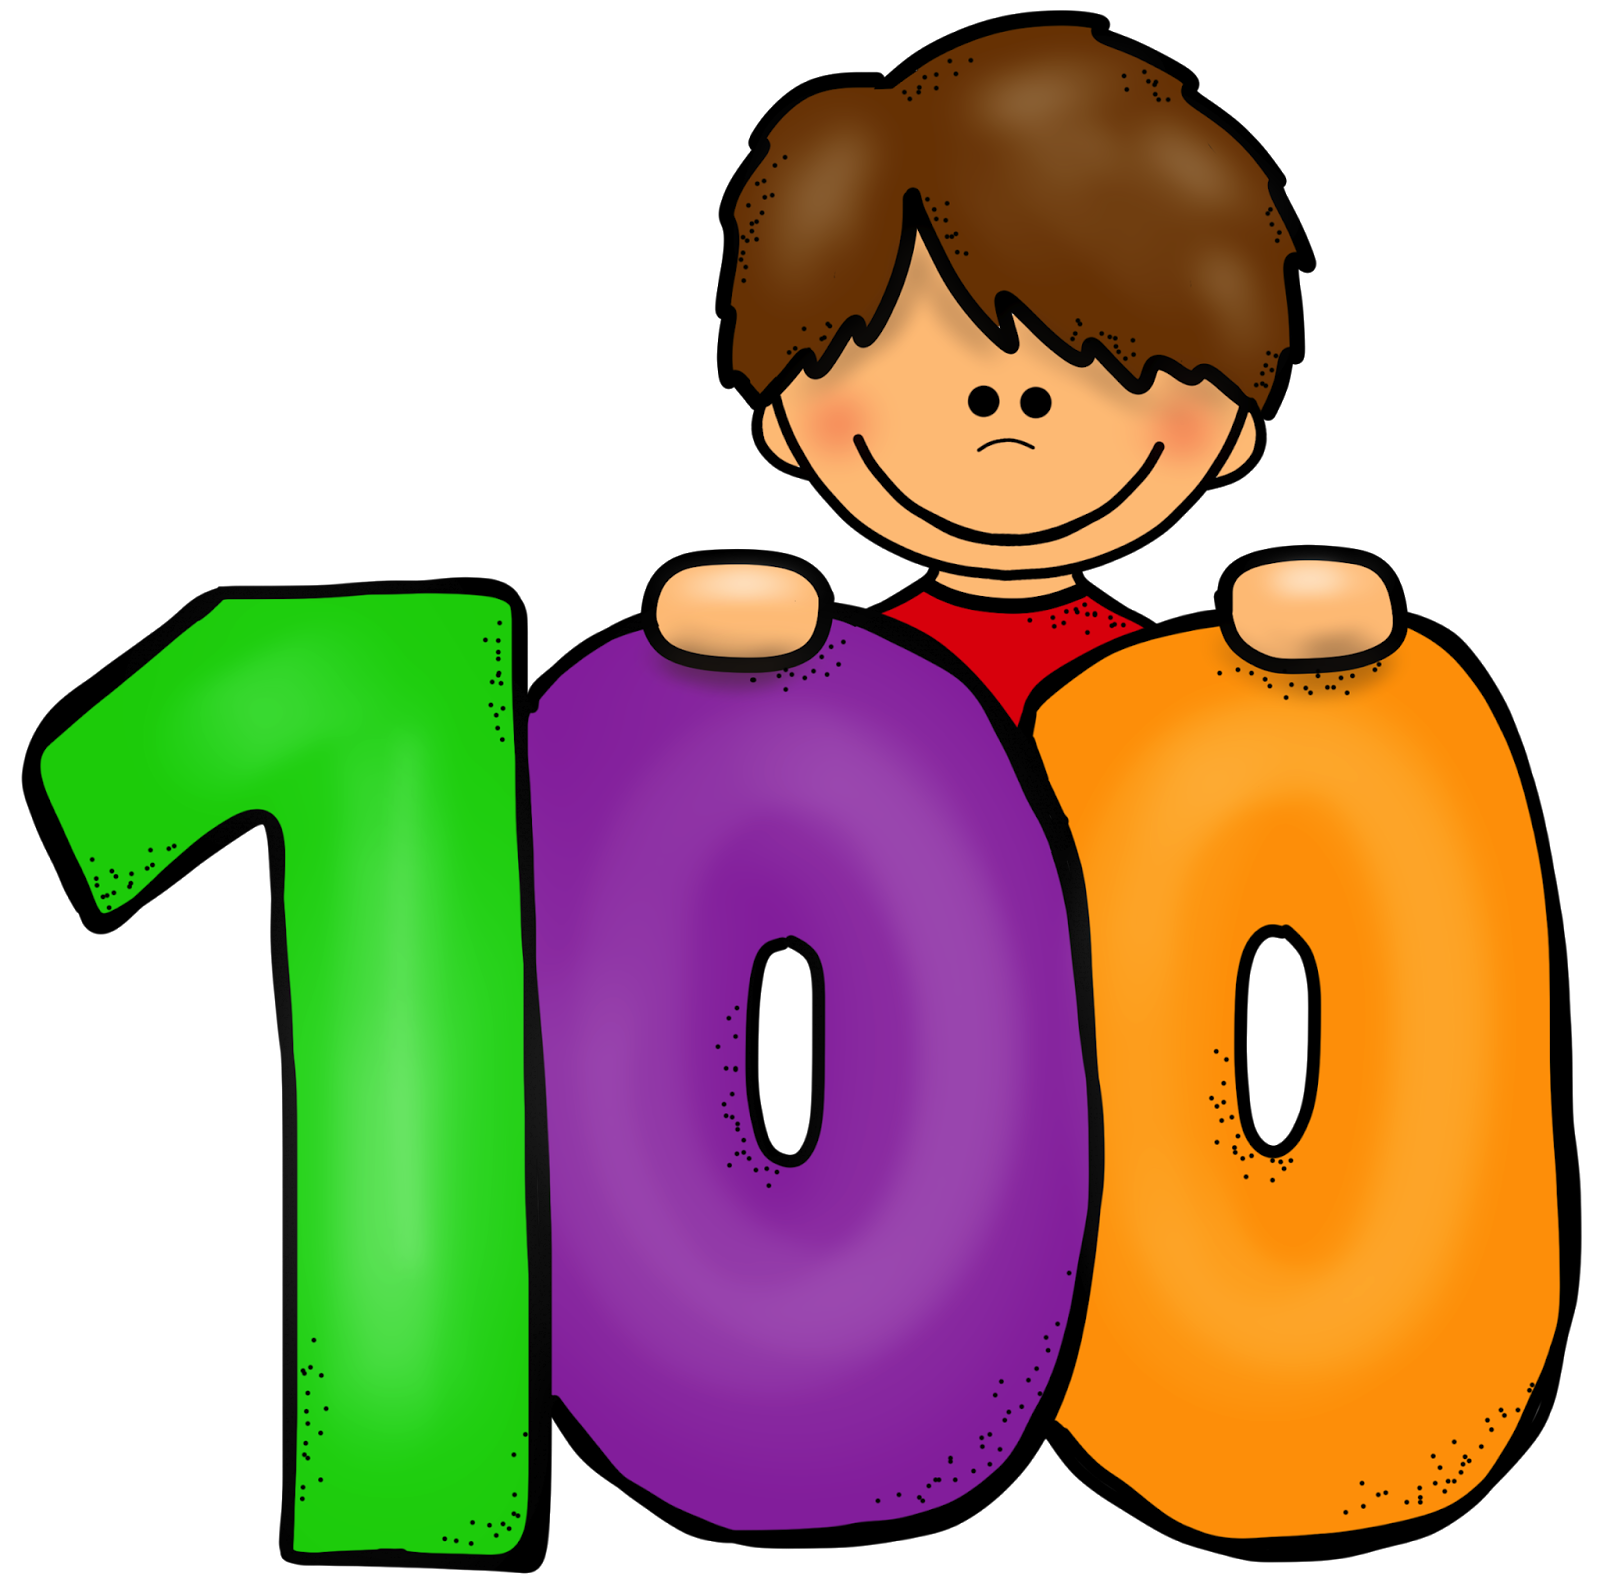 100th day of school clipart free clip art freeuse download 19 100 clipart HUGE FREEBIE! Download for PowerPoint presentations ... clip art freeuse download